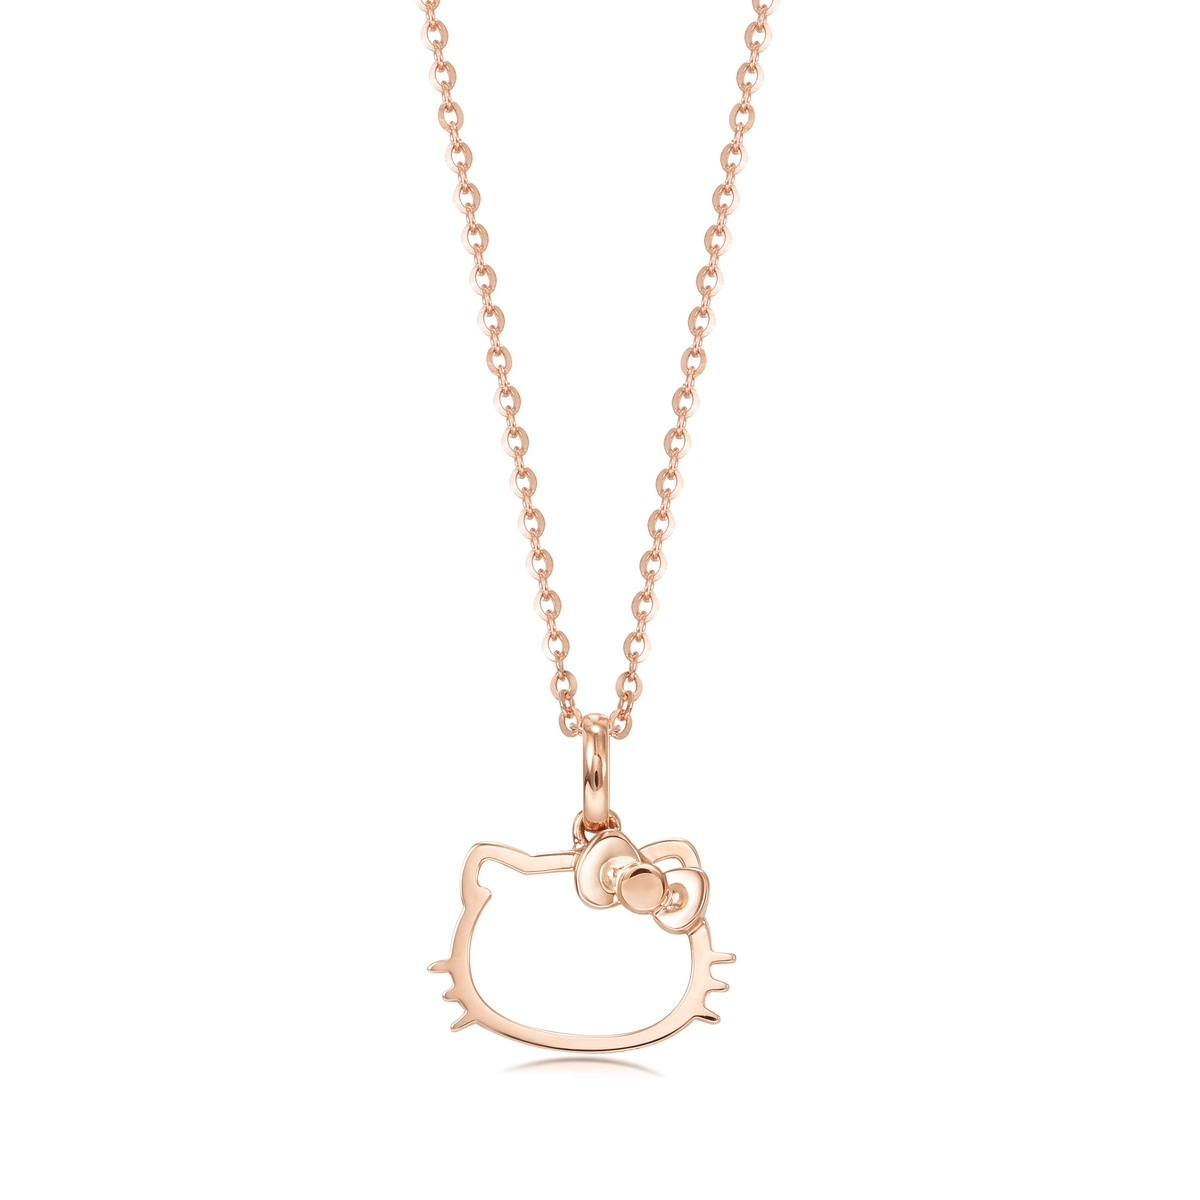 Sanrio hello kitty 18k gold pendant chow sang sang jewellery eshop loading zoom mozeypictures Image collections